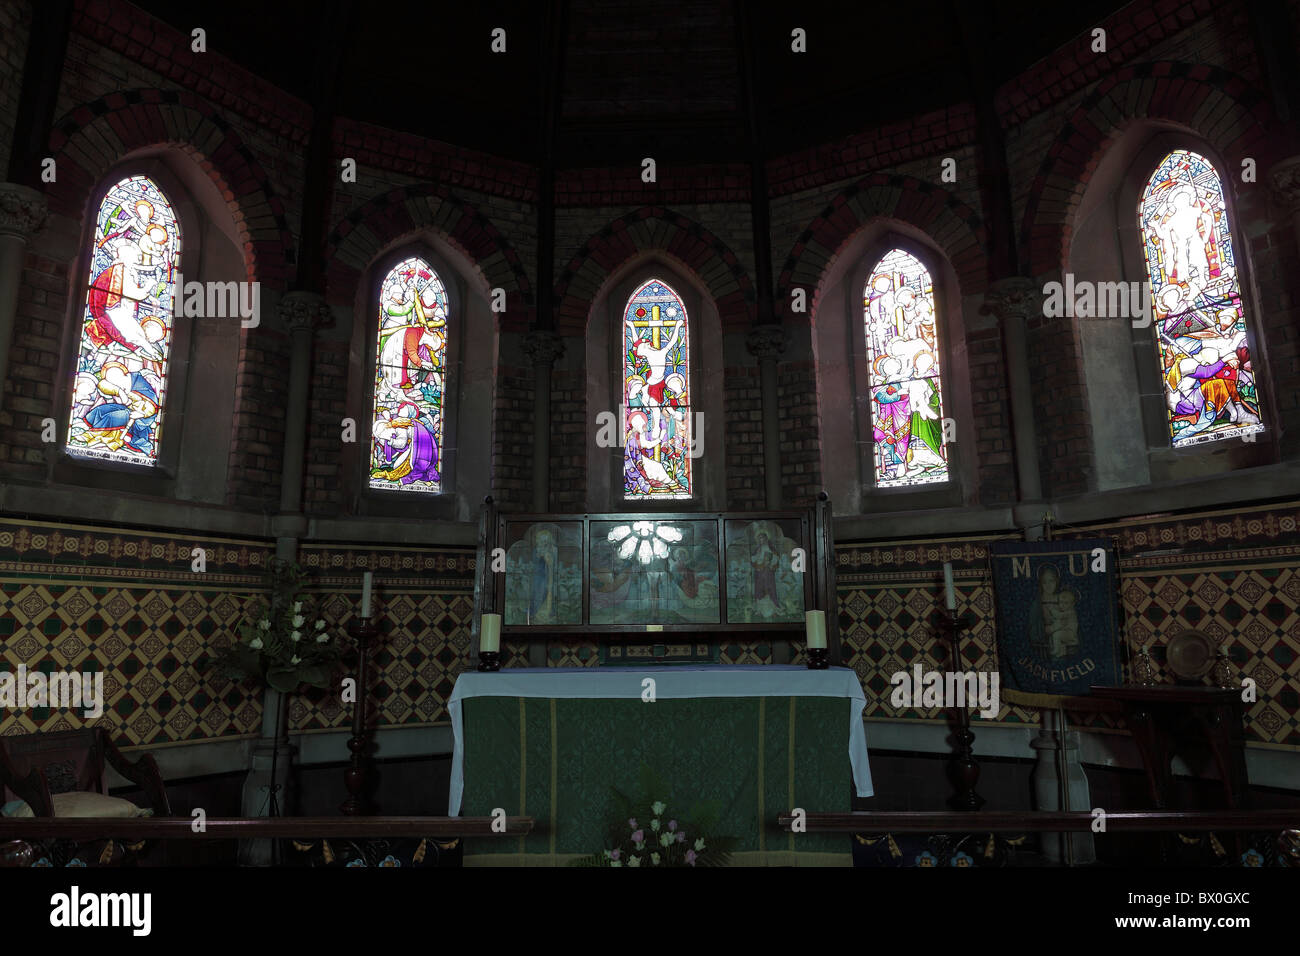 one of (17) images in this set related to St Mary the Virgin Church in Jackfield, Shropshire, England. Stained glass windows. Stock Photo